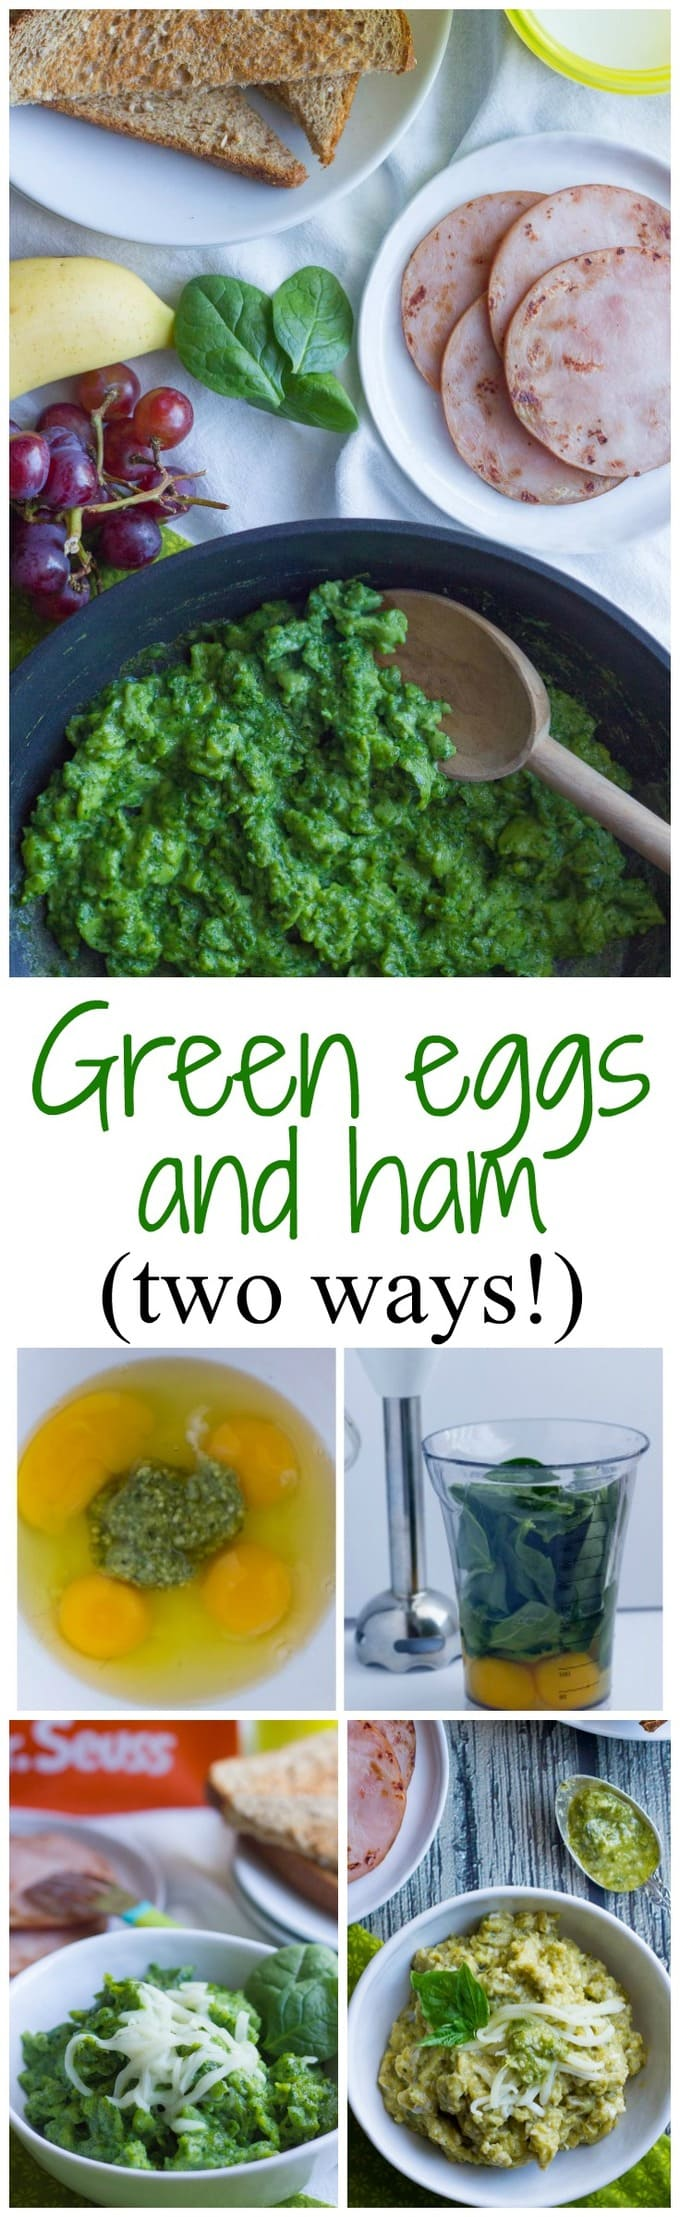 Green eggs and ham breakfast, 2 ways -- skip the food coloring and make some healty, easy real food green eggs with either pesto or fresh spinach | FamilyFoodontheTable.com